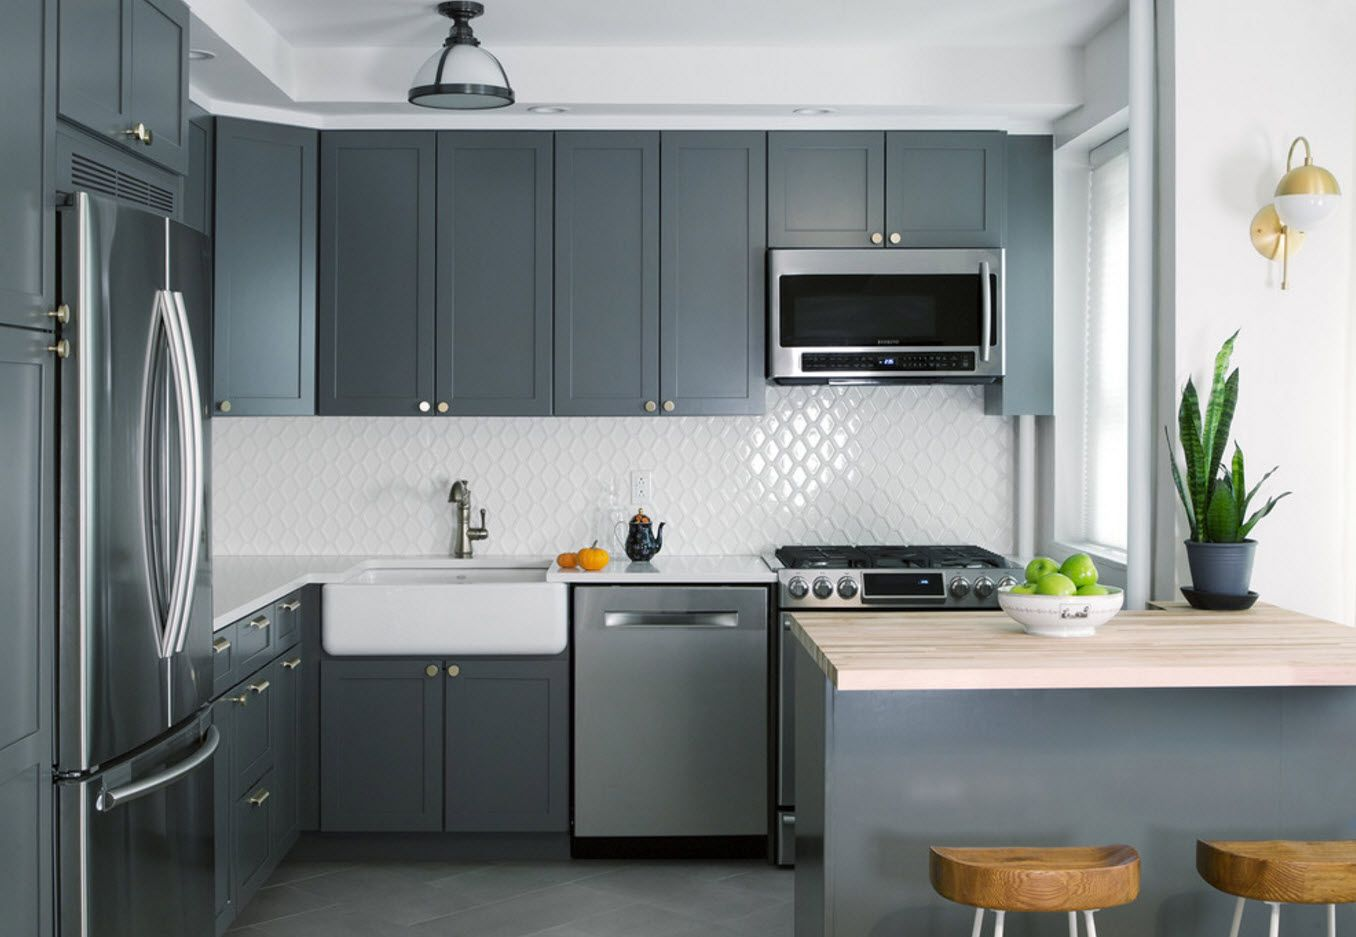 Modern hi-tech style with glossy gray kitchen facades